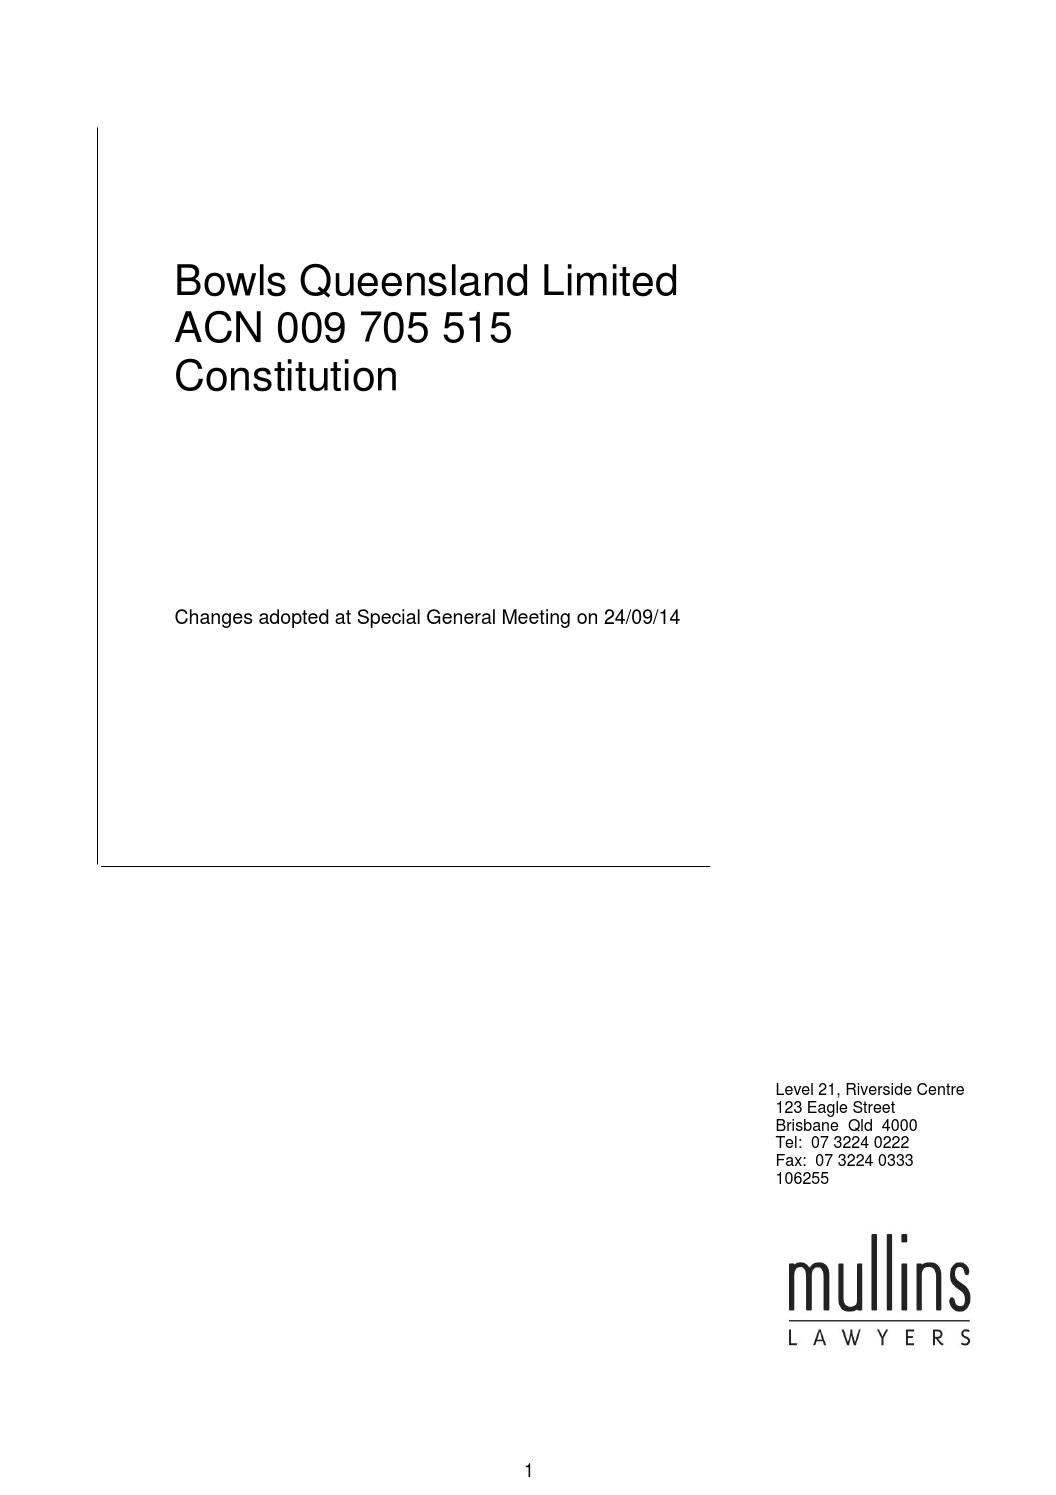 Bowls Qld Bowls Qld Constitution By Queensland Bowler Issuu